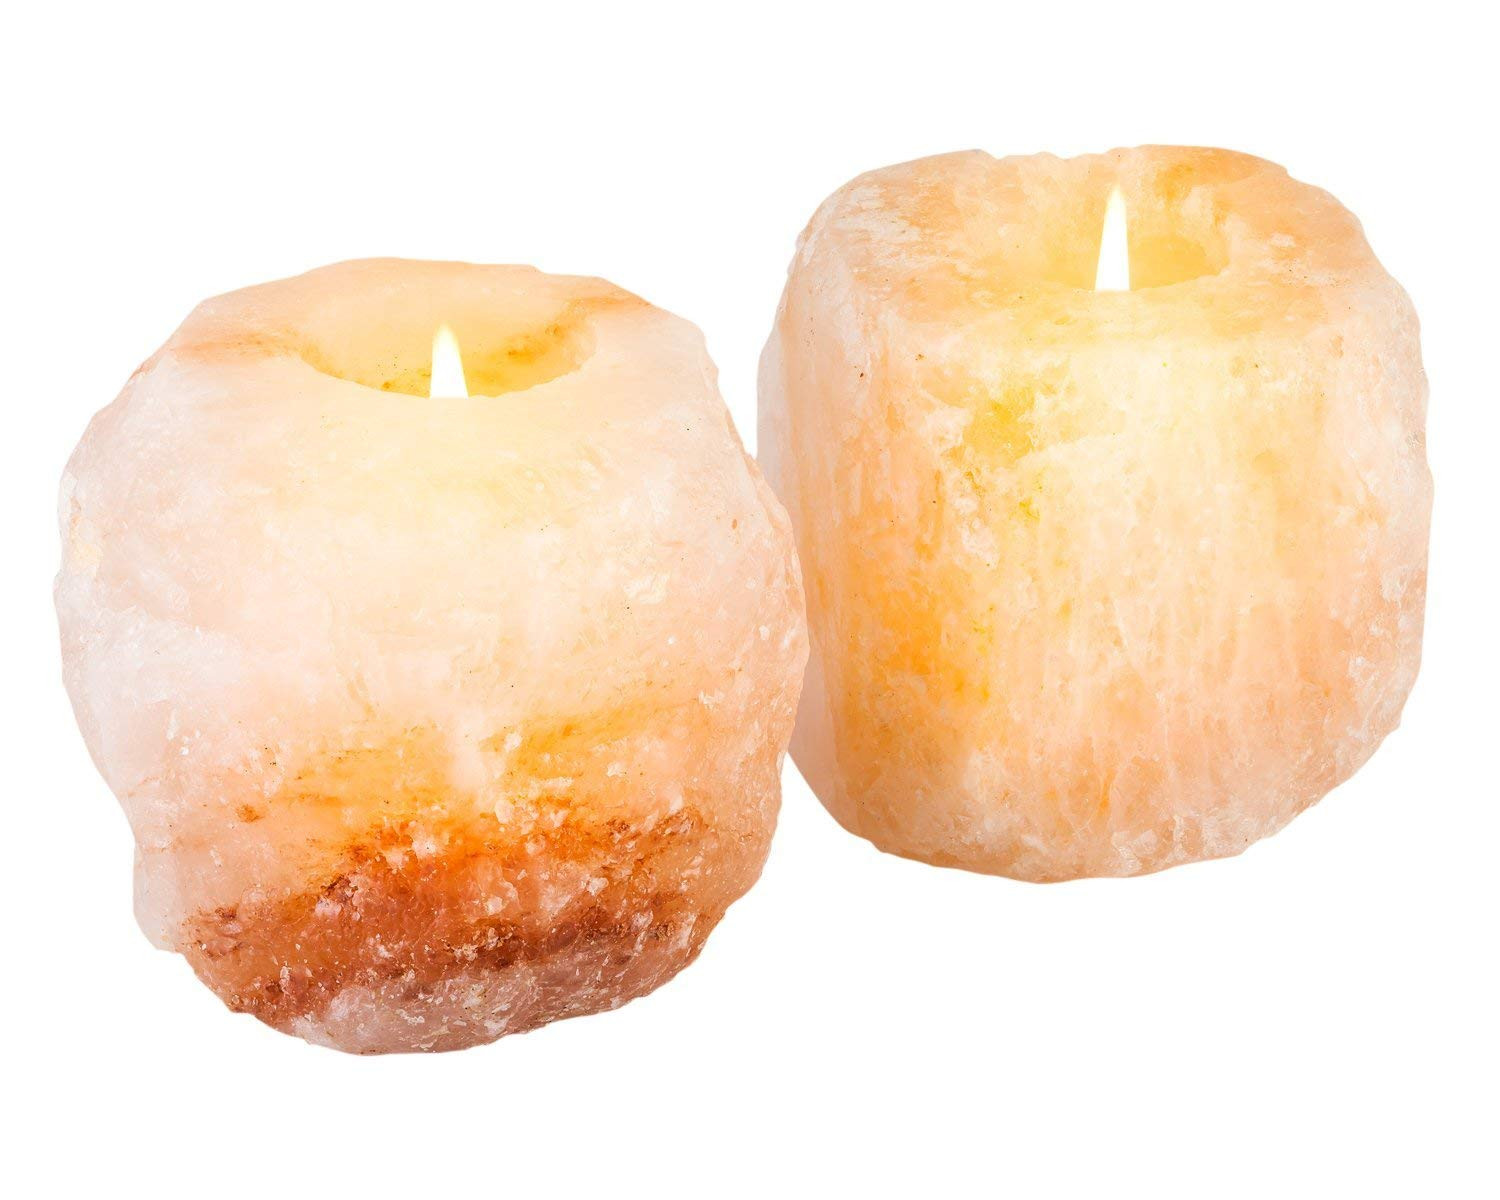 tea light candle vases of amazon com mockins 2 5 lbs natural himalayan salt tea light candle in amazon com mockins 2 5 lbs natural himalayan salt tea light candle holder 1 pack holiday gift home kitchen